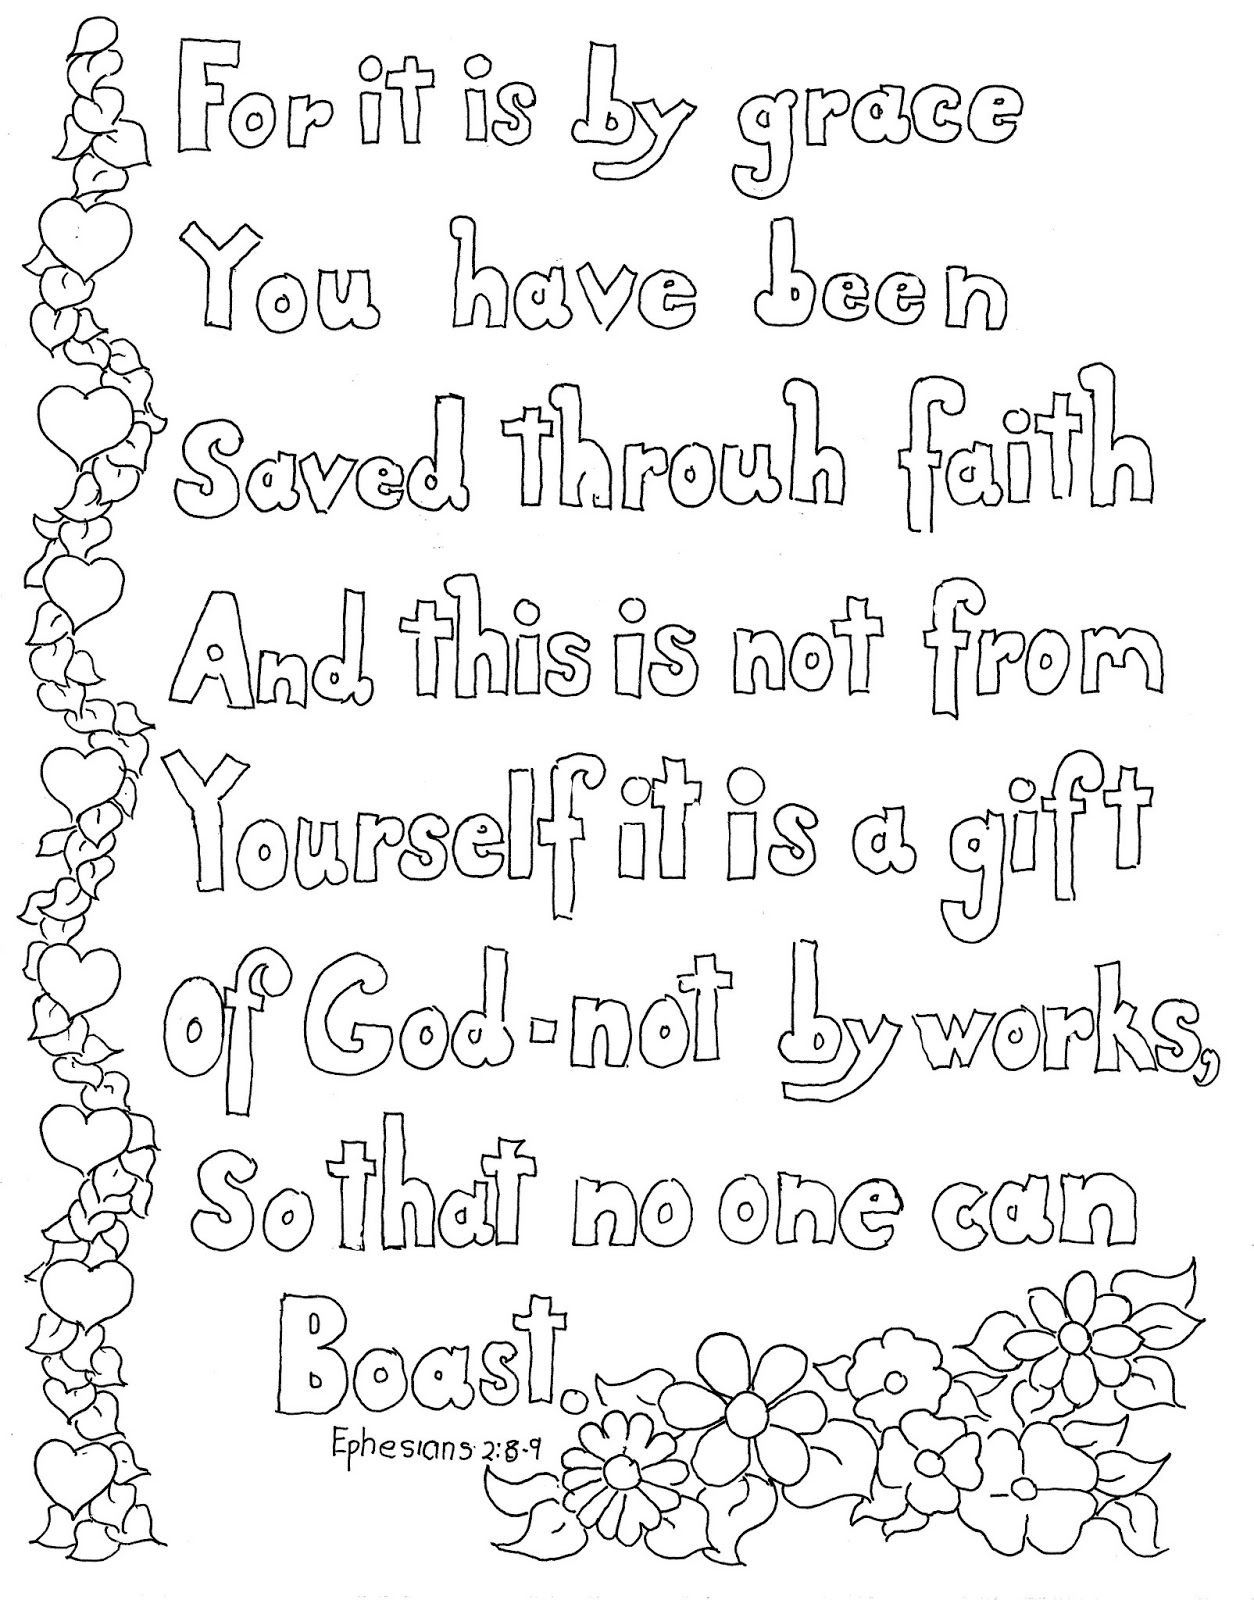 Coloring pages for preschoolers on salavation - Coloring Pages For Kids By Mr Adron Ephesians 2 8 9 Print